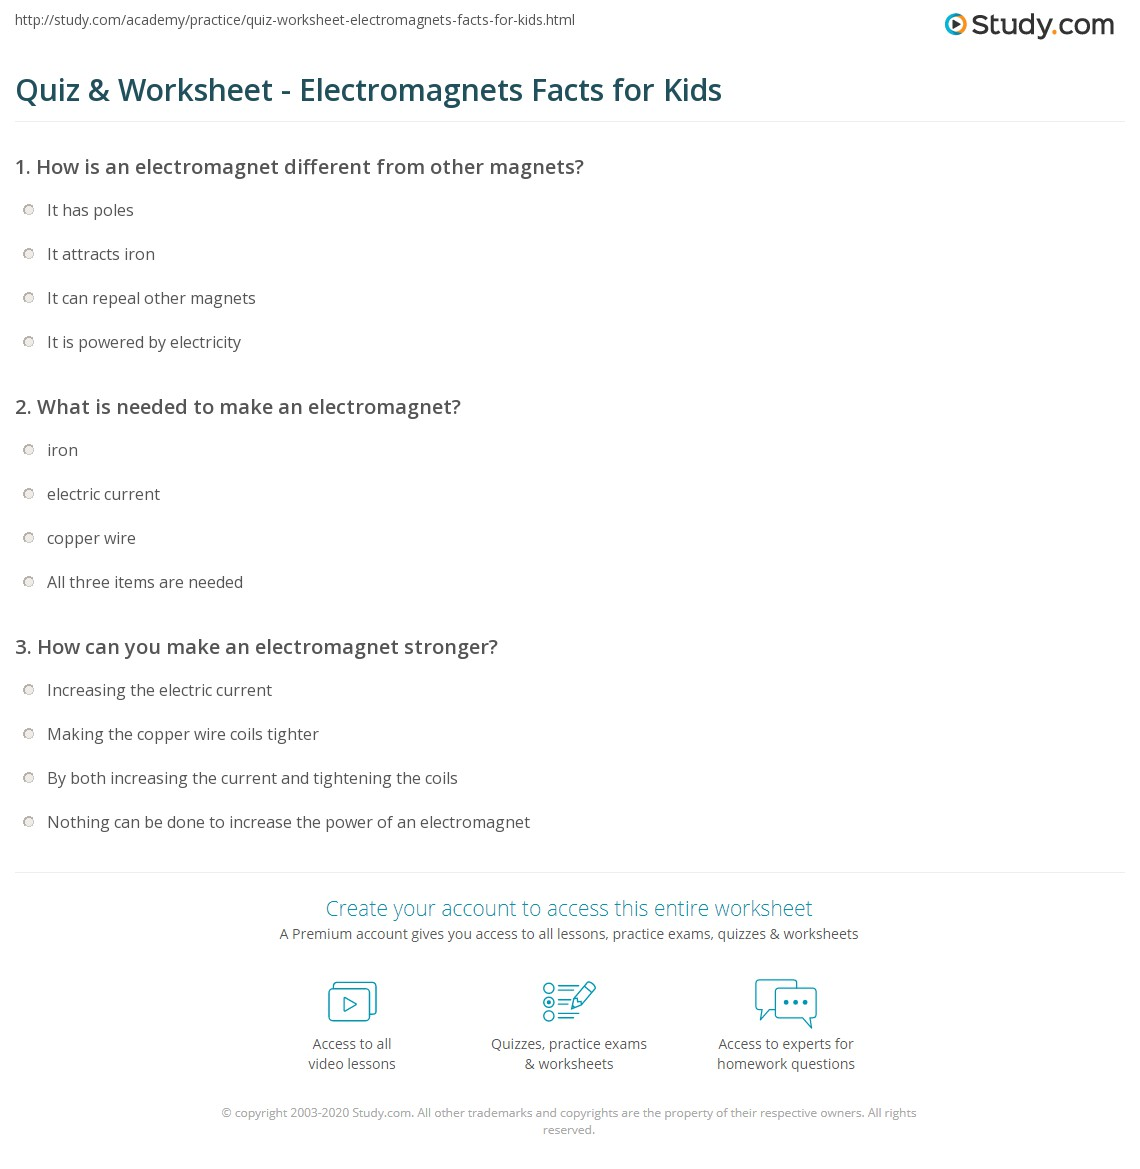 Quiz Worksheet Electromagnets Facts For Kids Study